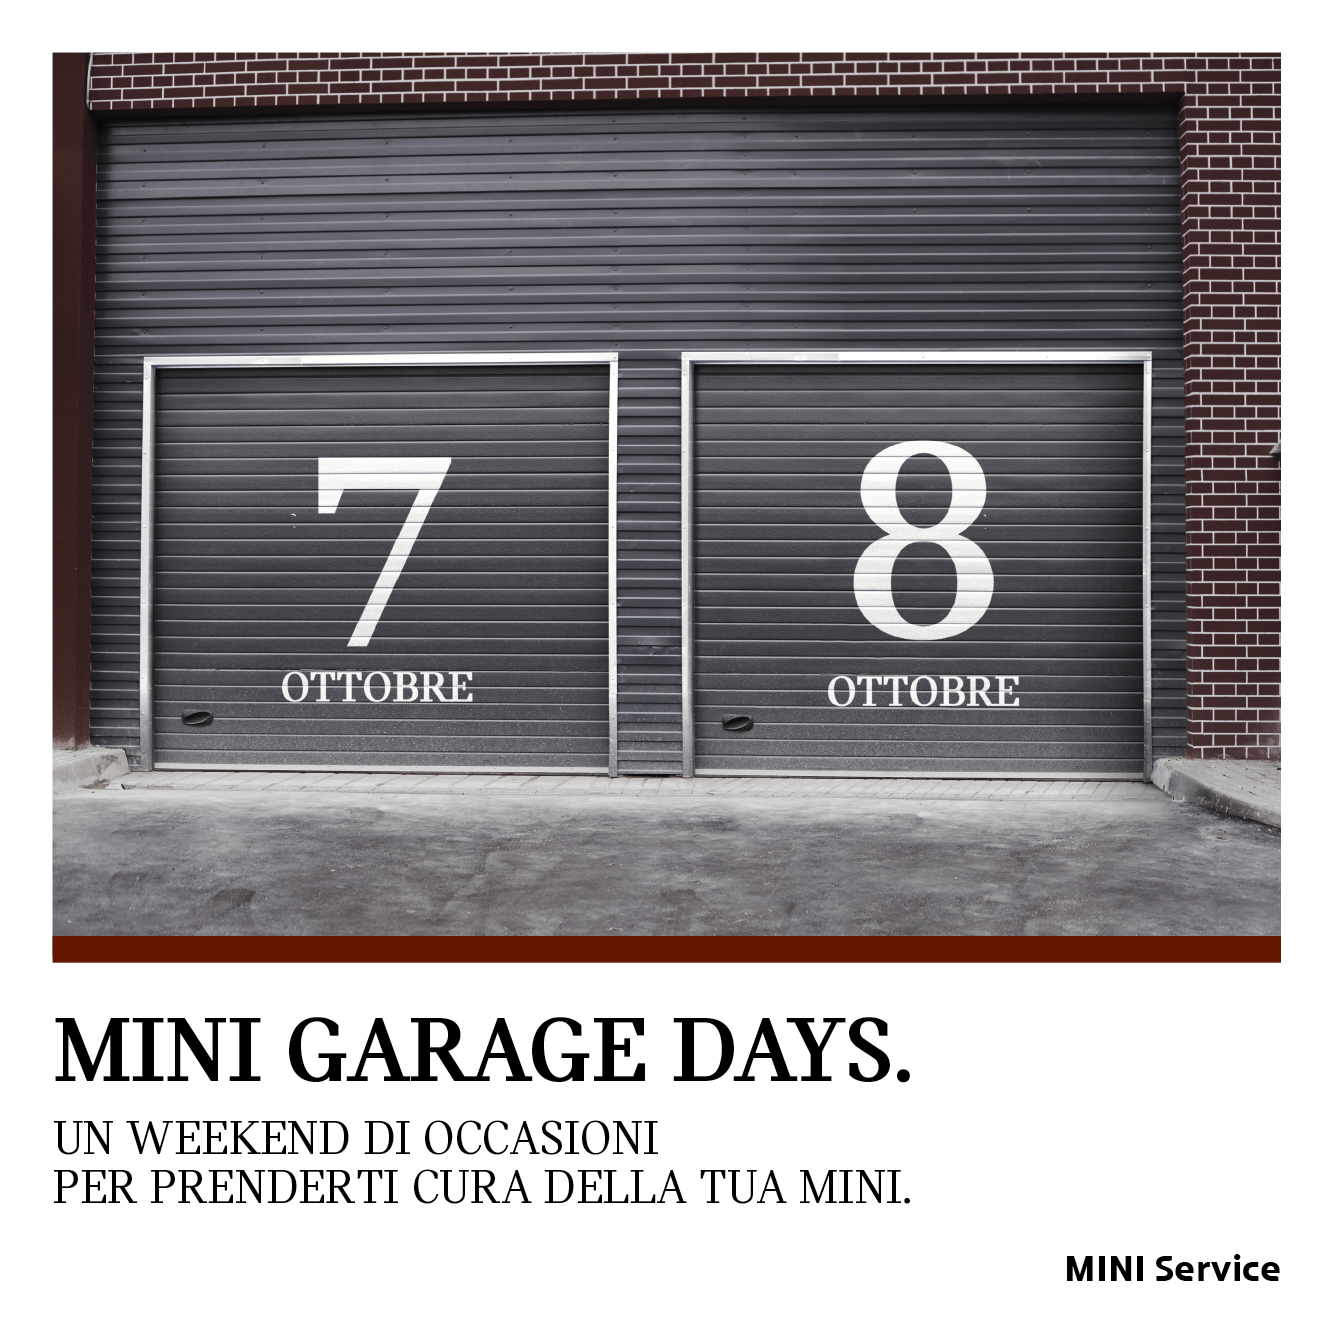 7 E 8 Ottobre MINI Garage Days